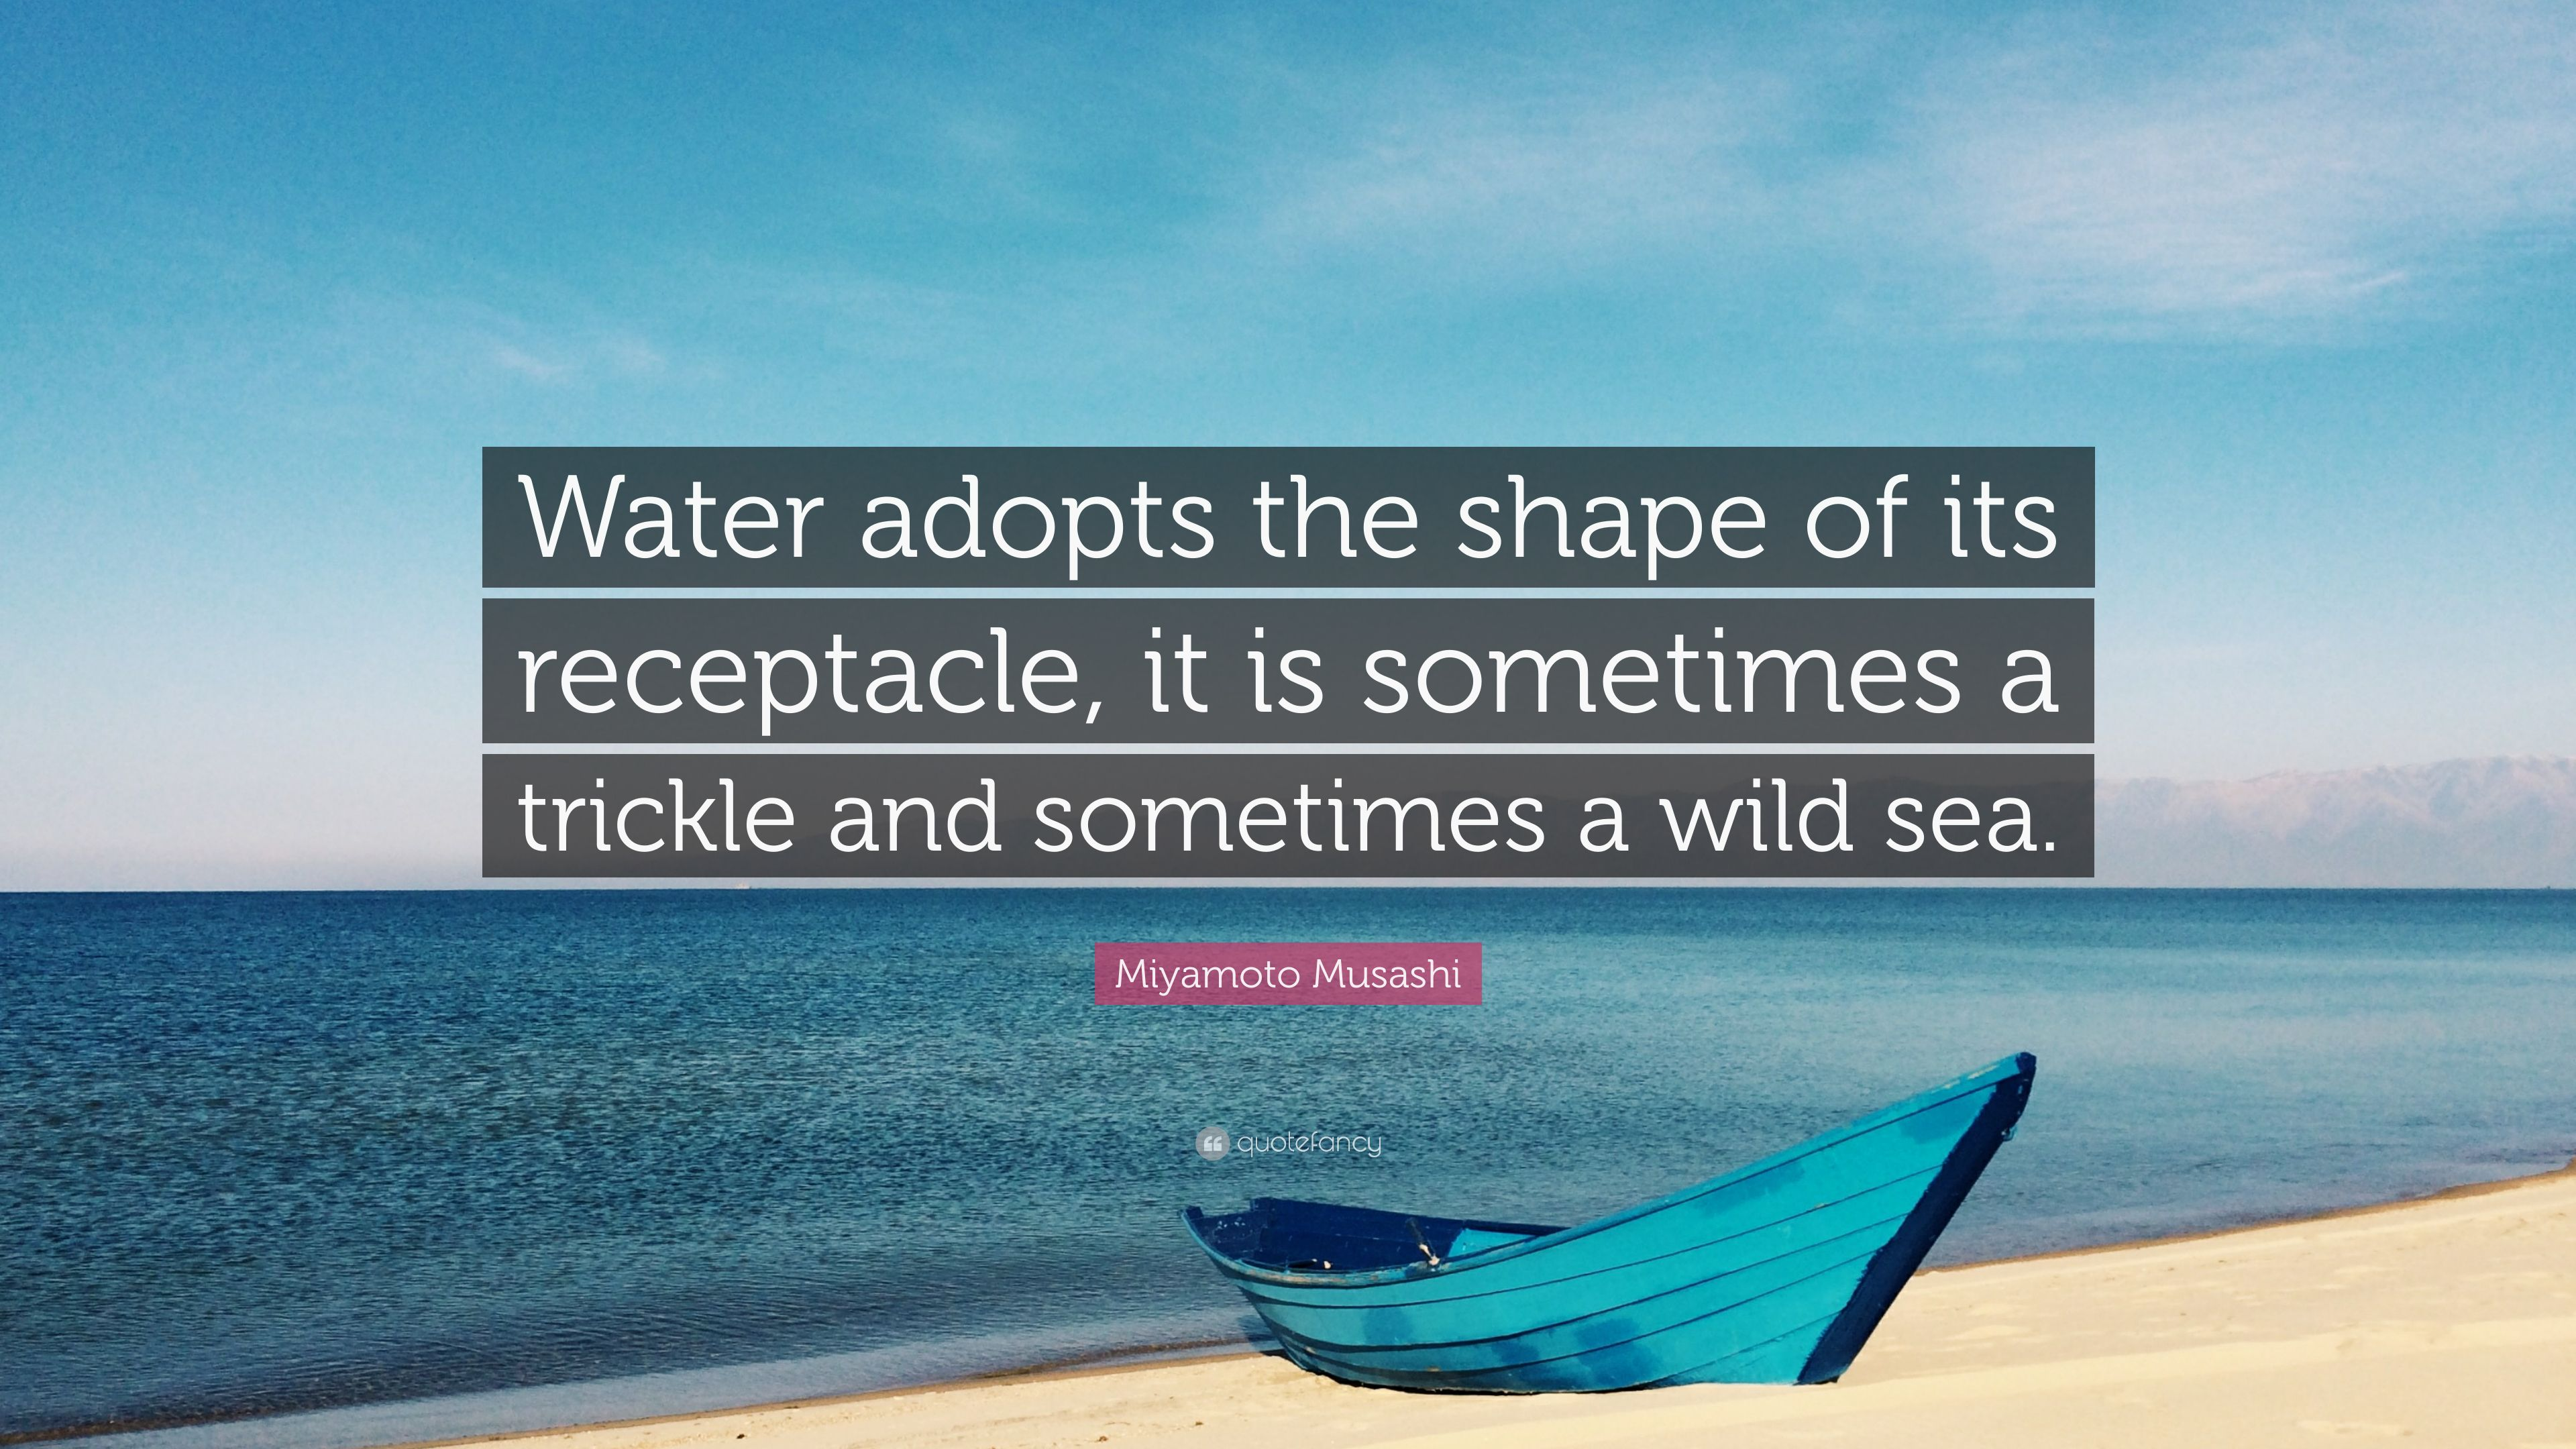 """Calendar Quotes From The Shape Of Water : Miyamoto musashi quote """"water adopts the shape of its"""